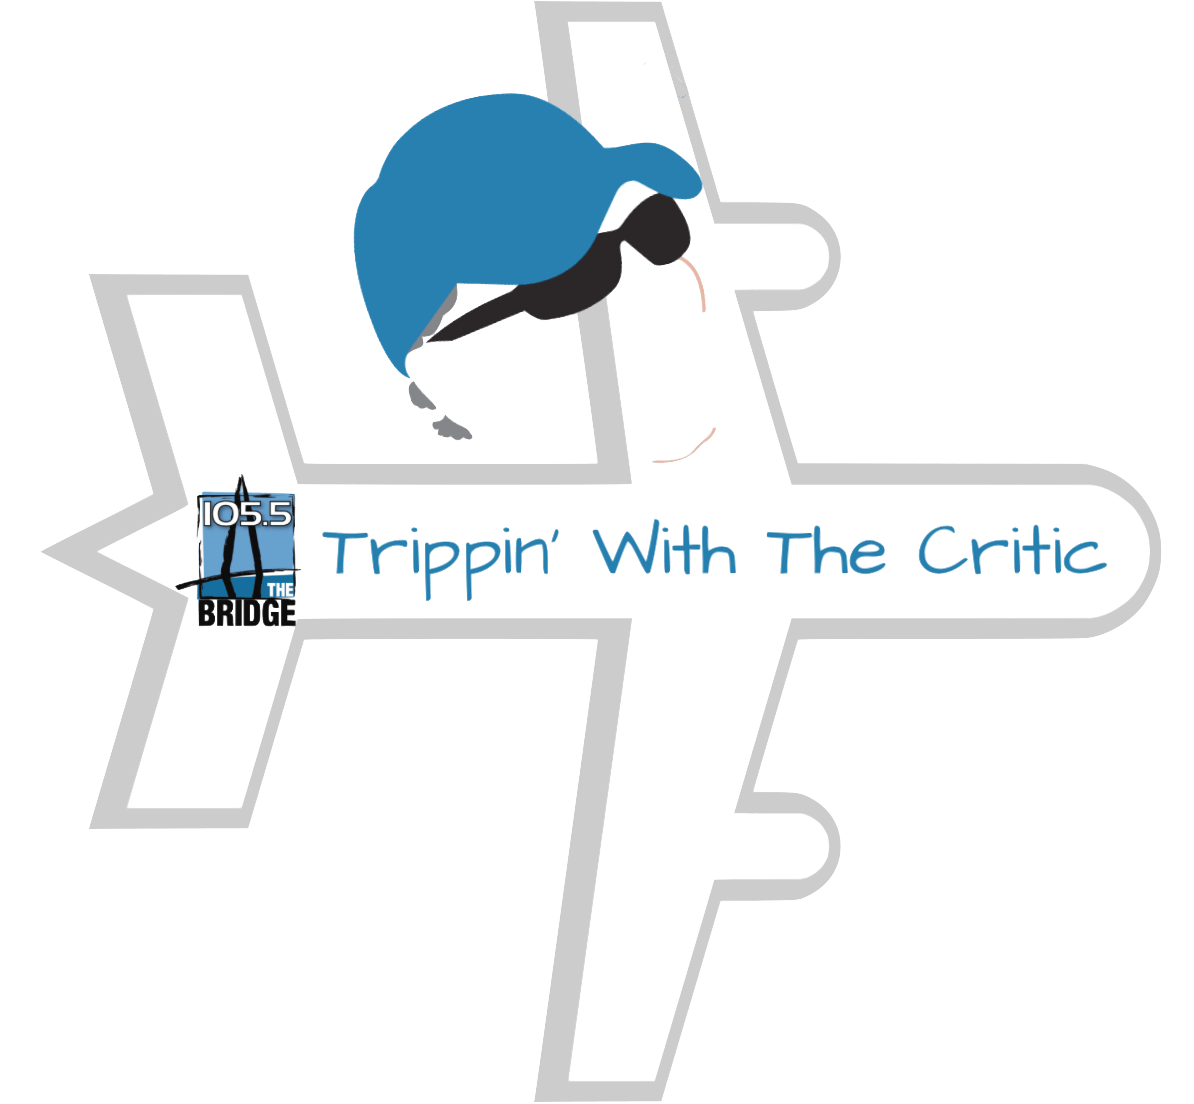 Trippin with The Critic | The Bridge at 1055